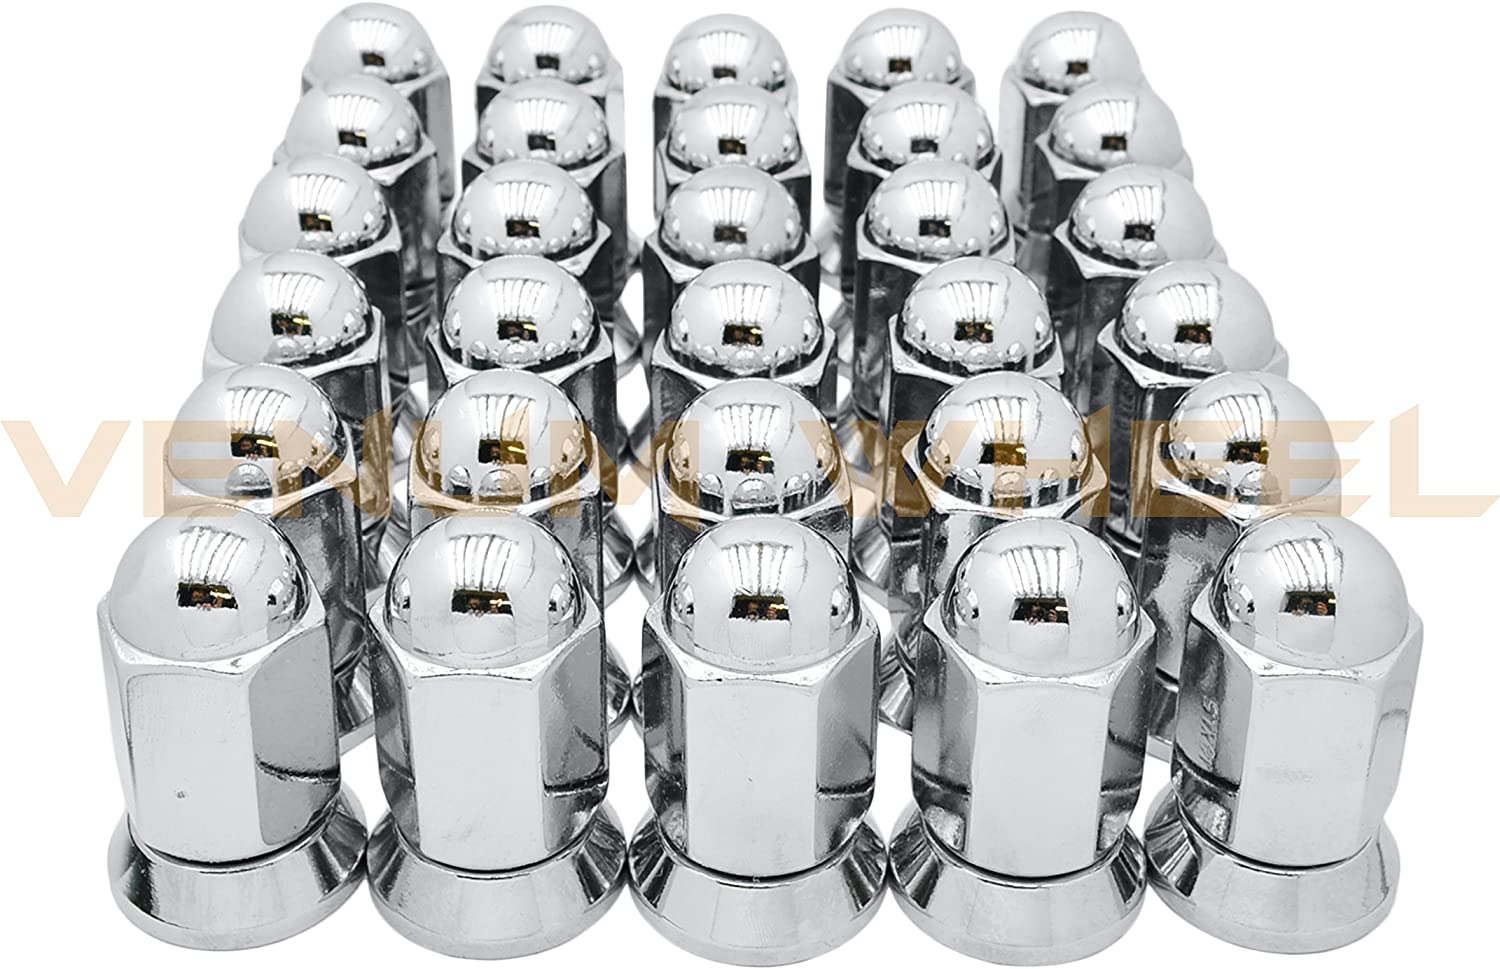 8 8 Pc Alcoa Style Chrome Lug Nuts For Duallys With Pressed In Washer Attached M14x1.5 Thread Fits Silverado Sierra 3500HD Ford F-350 Ram 3500